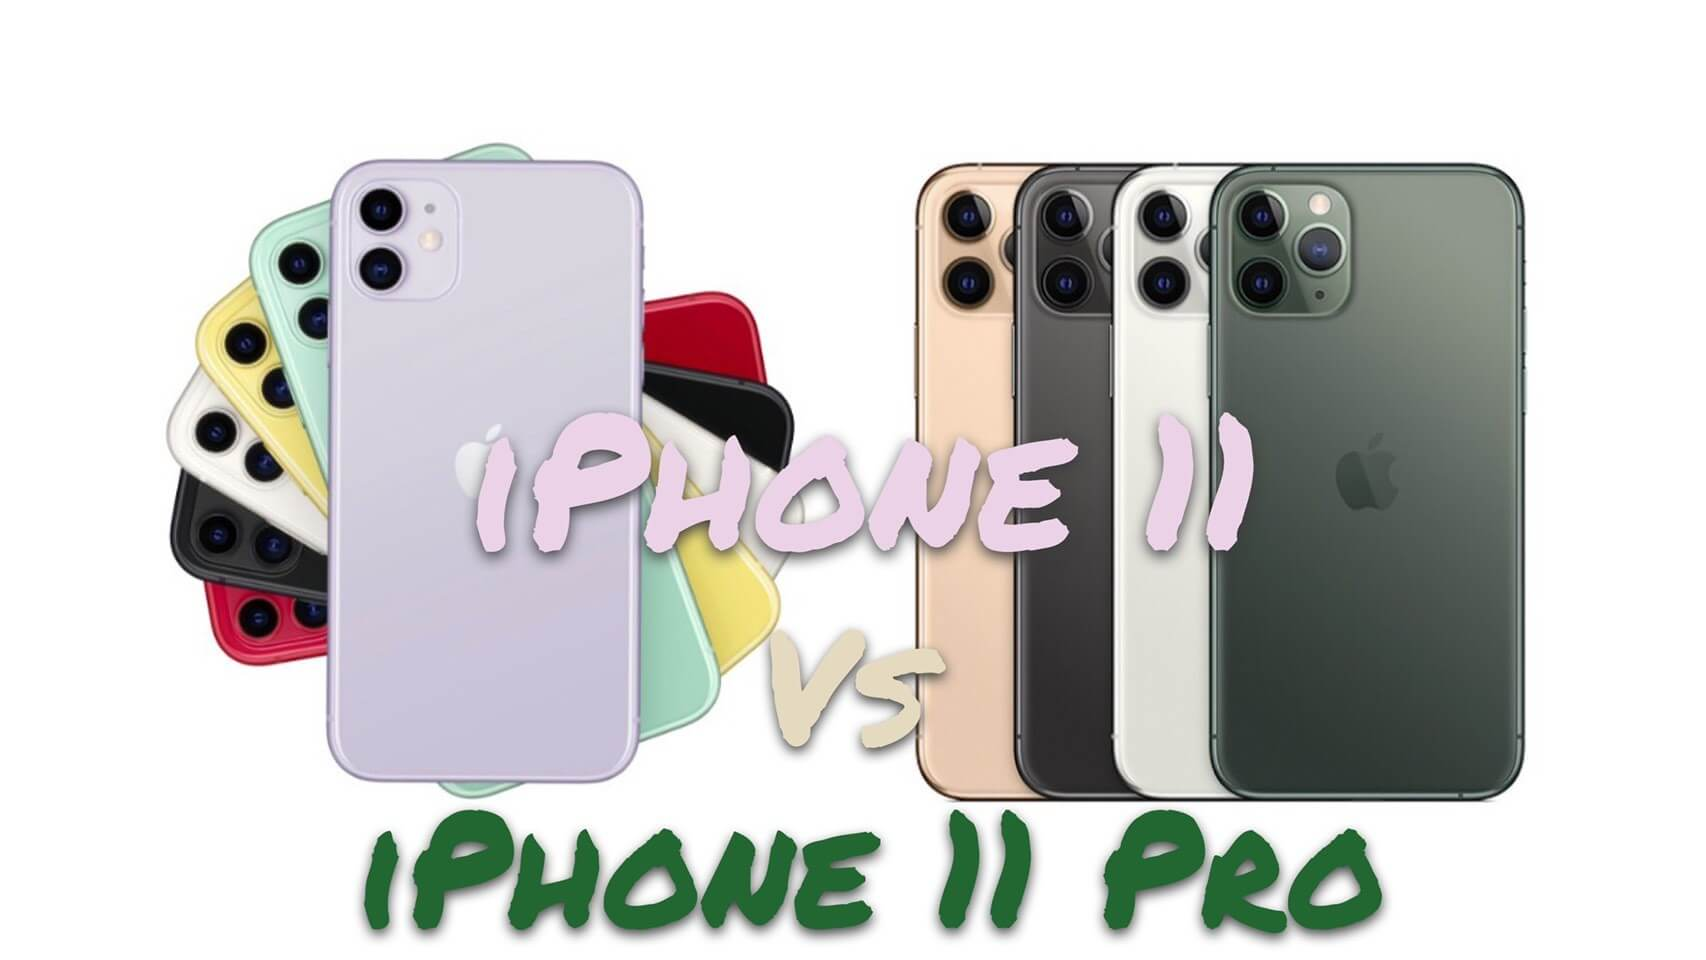 iPhone11、iPhone 11 Pro、iPhone 11 Pro Max 好難選擇?